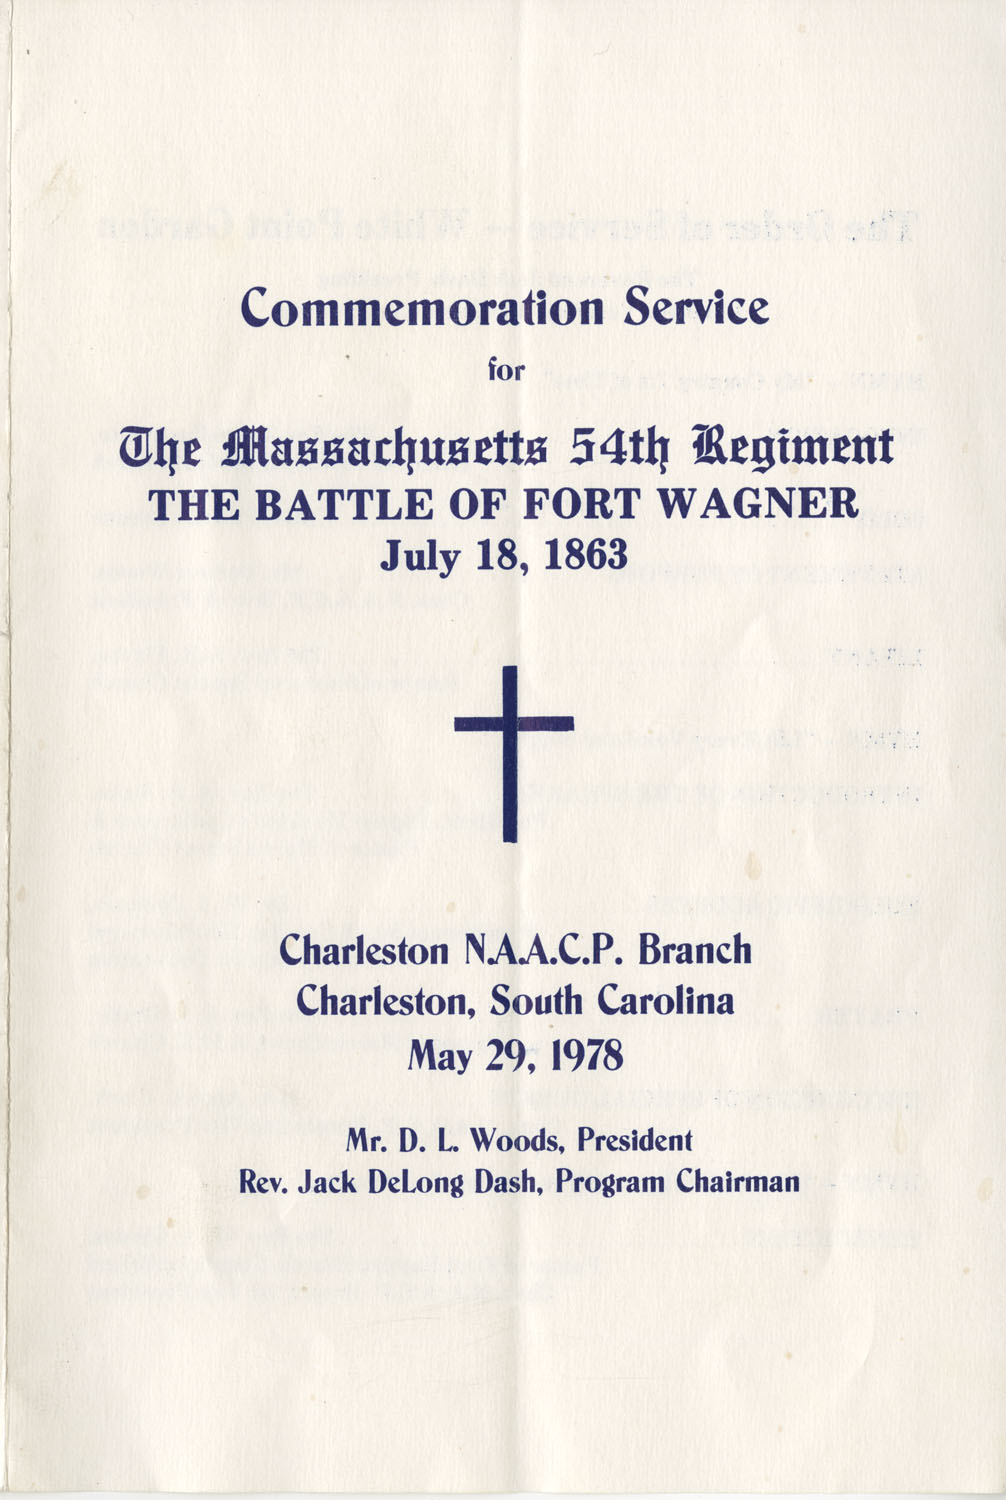 Commemoration Service for the Massachusetts 54th Regiment, the Battle of Fort Wagner, May 29, 1978